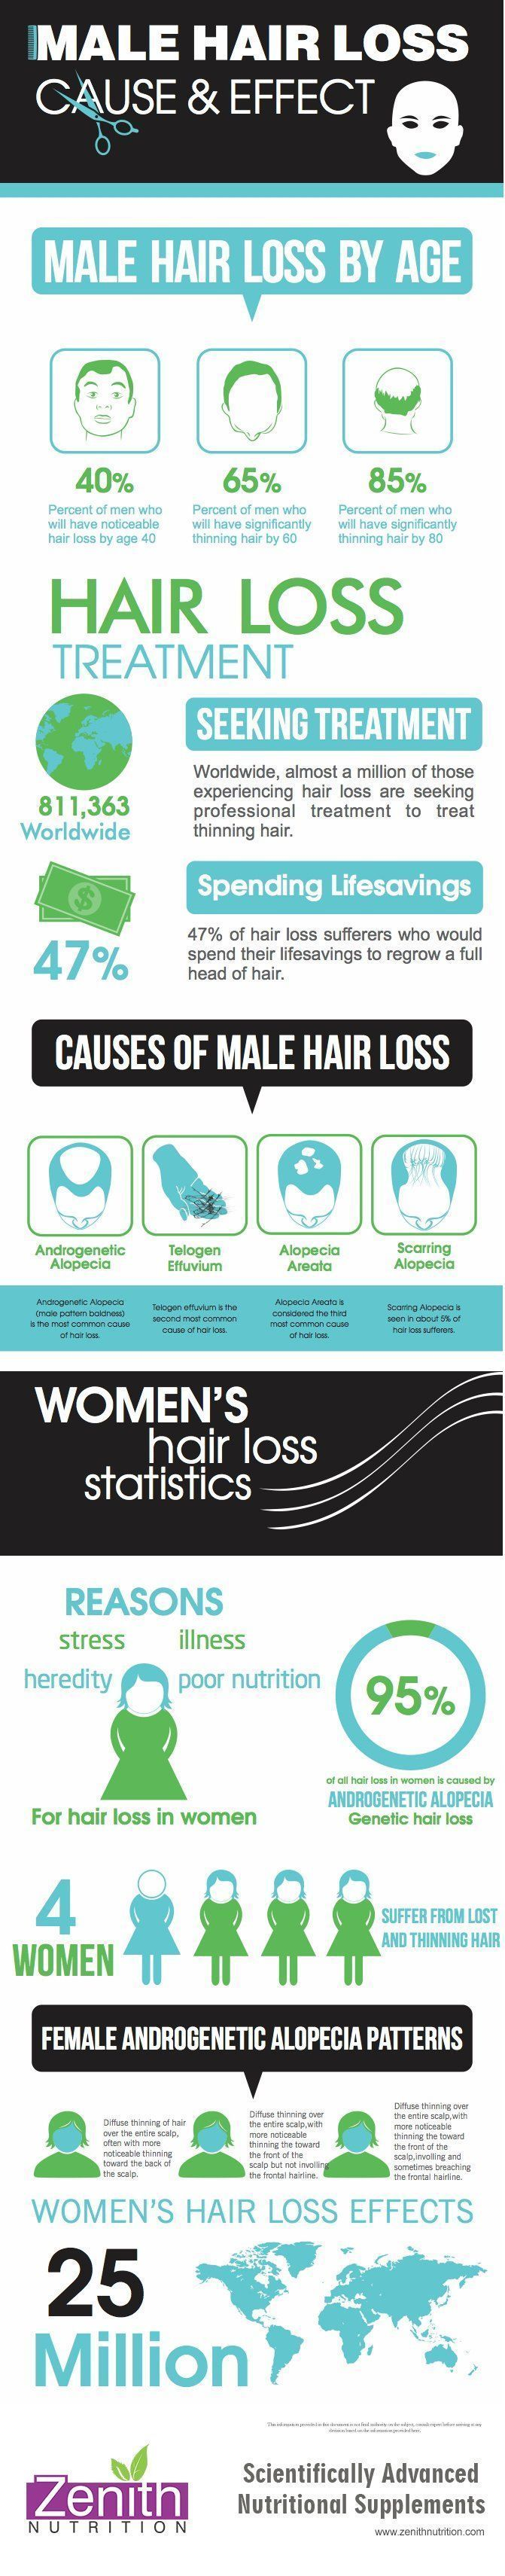 Hair Loss Causes & Effects. Hair loss by age, hair loss treatment, seeking treatment, spending life savings, causes of hair loss. Best supplements from Zenith Nutrition. Health Supplements. Nutritional Supplements. Health Infographics #hairlossinfographic